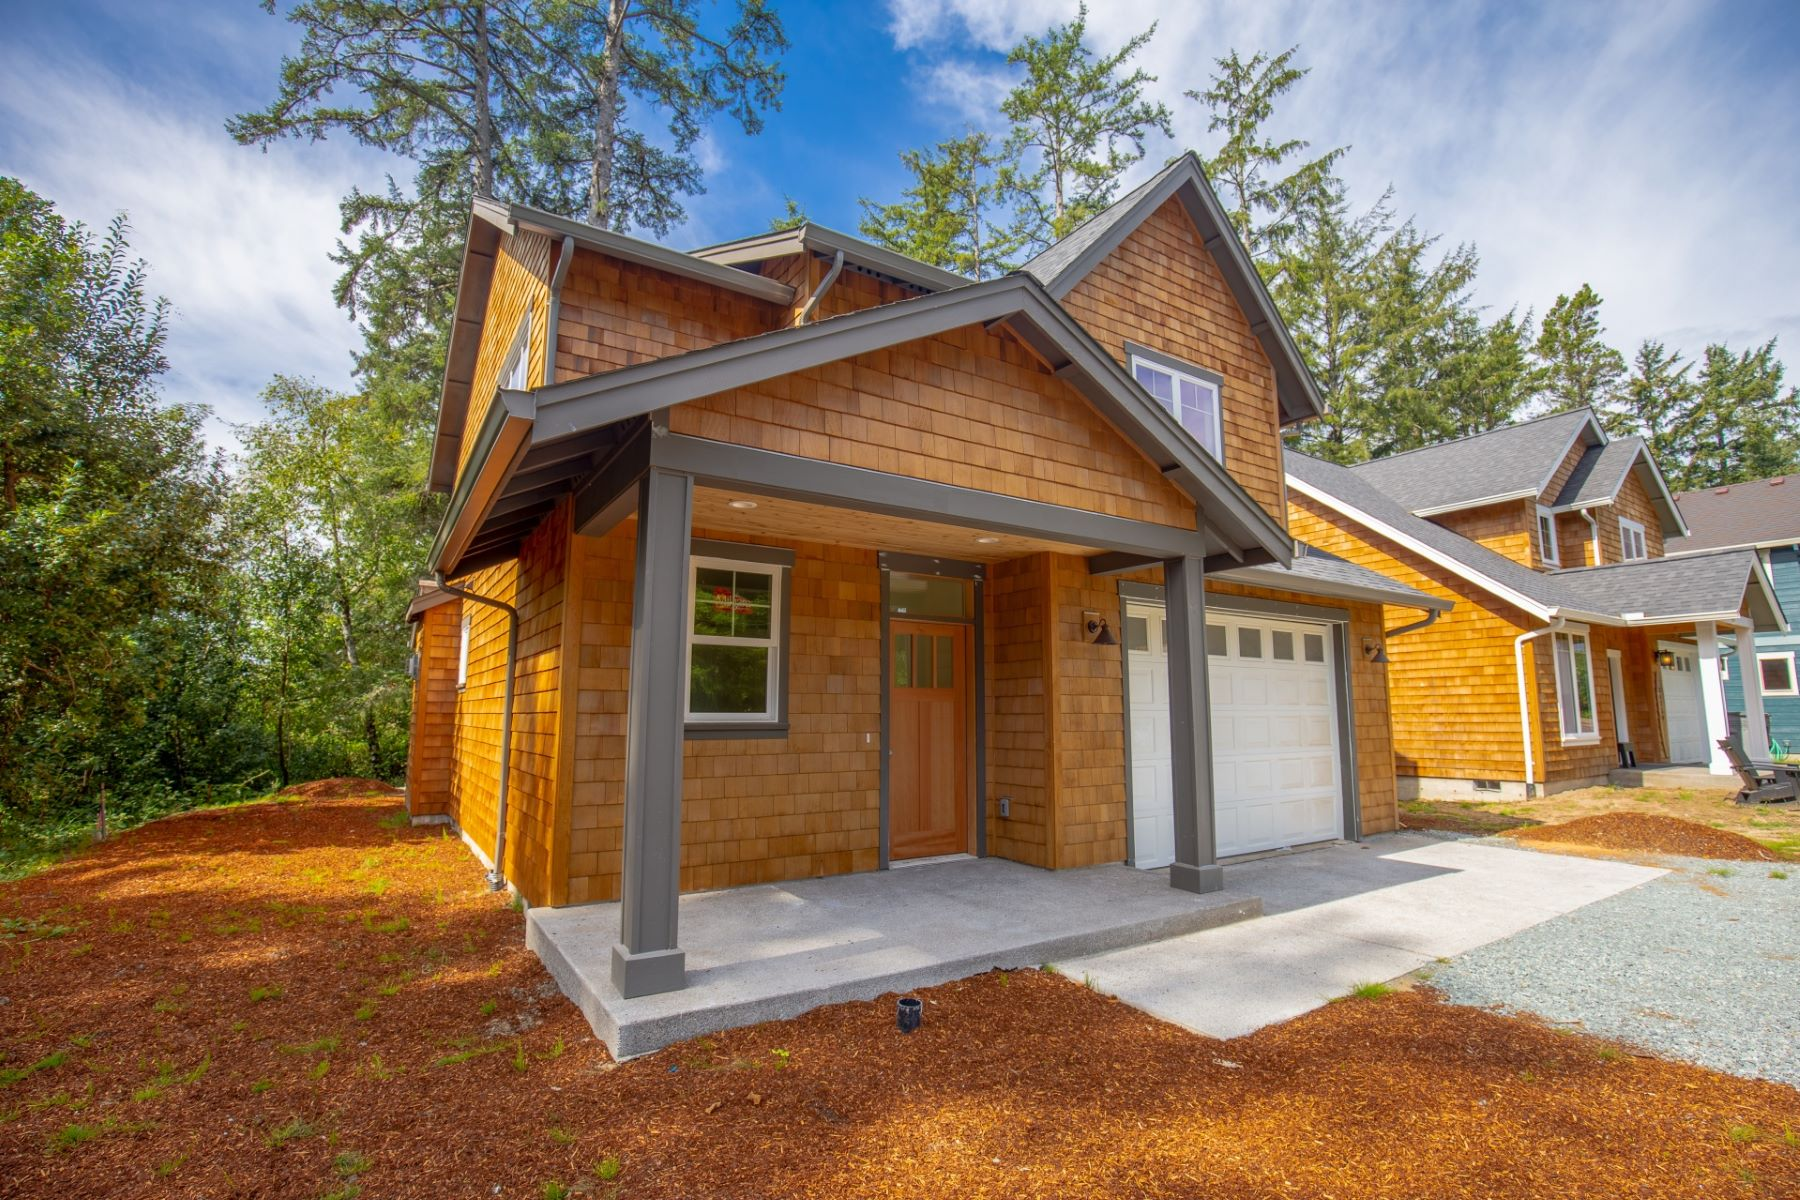 Single Family Homes for Active at Quality New Construction 34720 Nehalem Ave Manzanita, Oregon 97130 United States